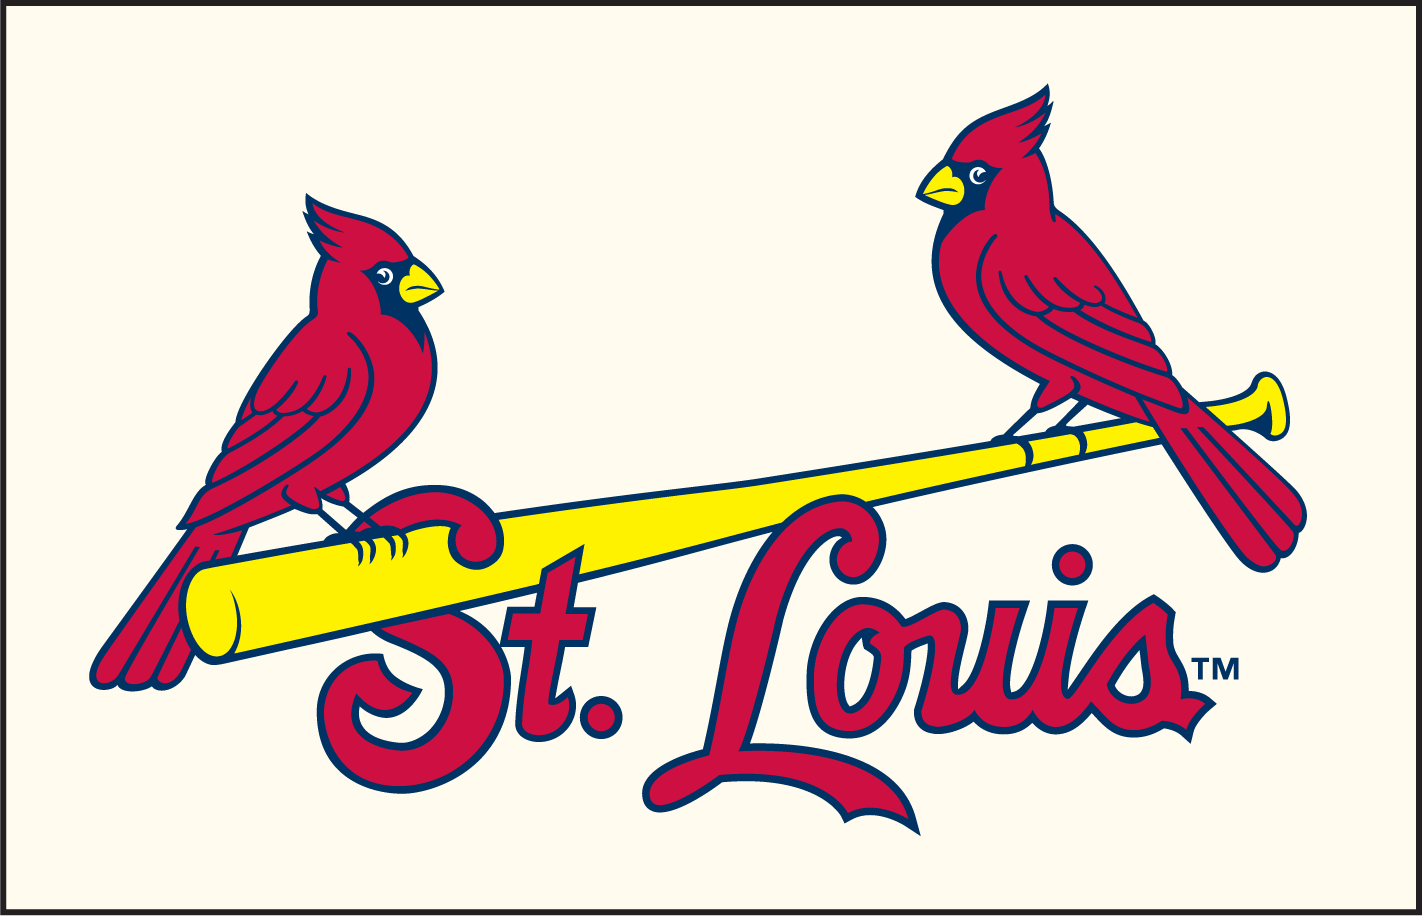 stl cardinals logo photo cardinals logo this photo was uploaded by kipferfox joeys pics pinterest stl cardinals cardinals and st louis cardinals